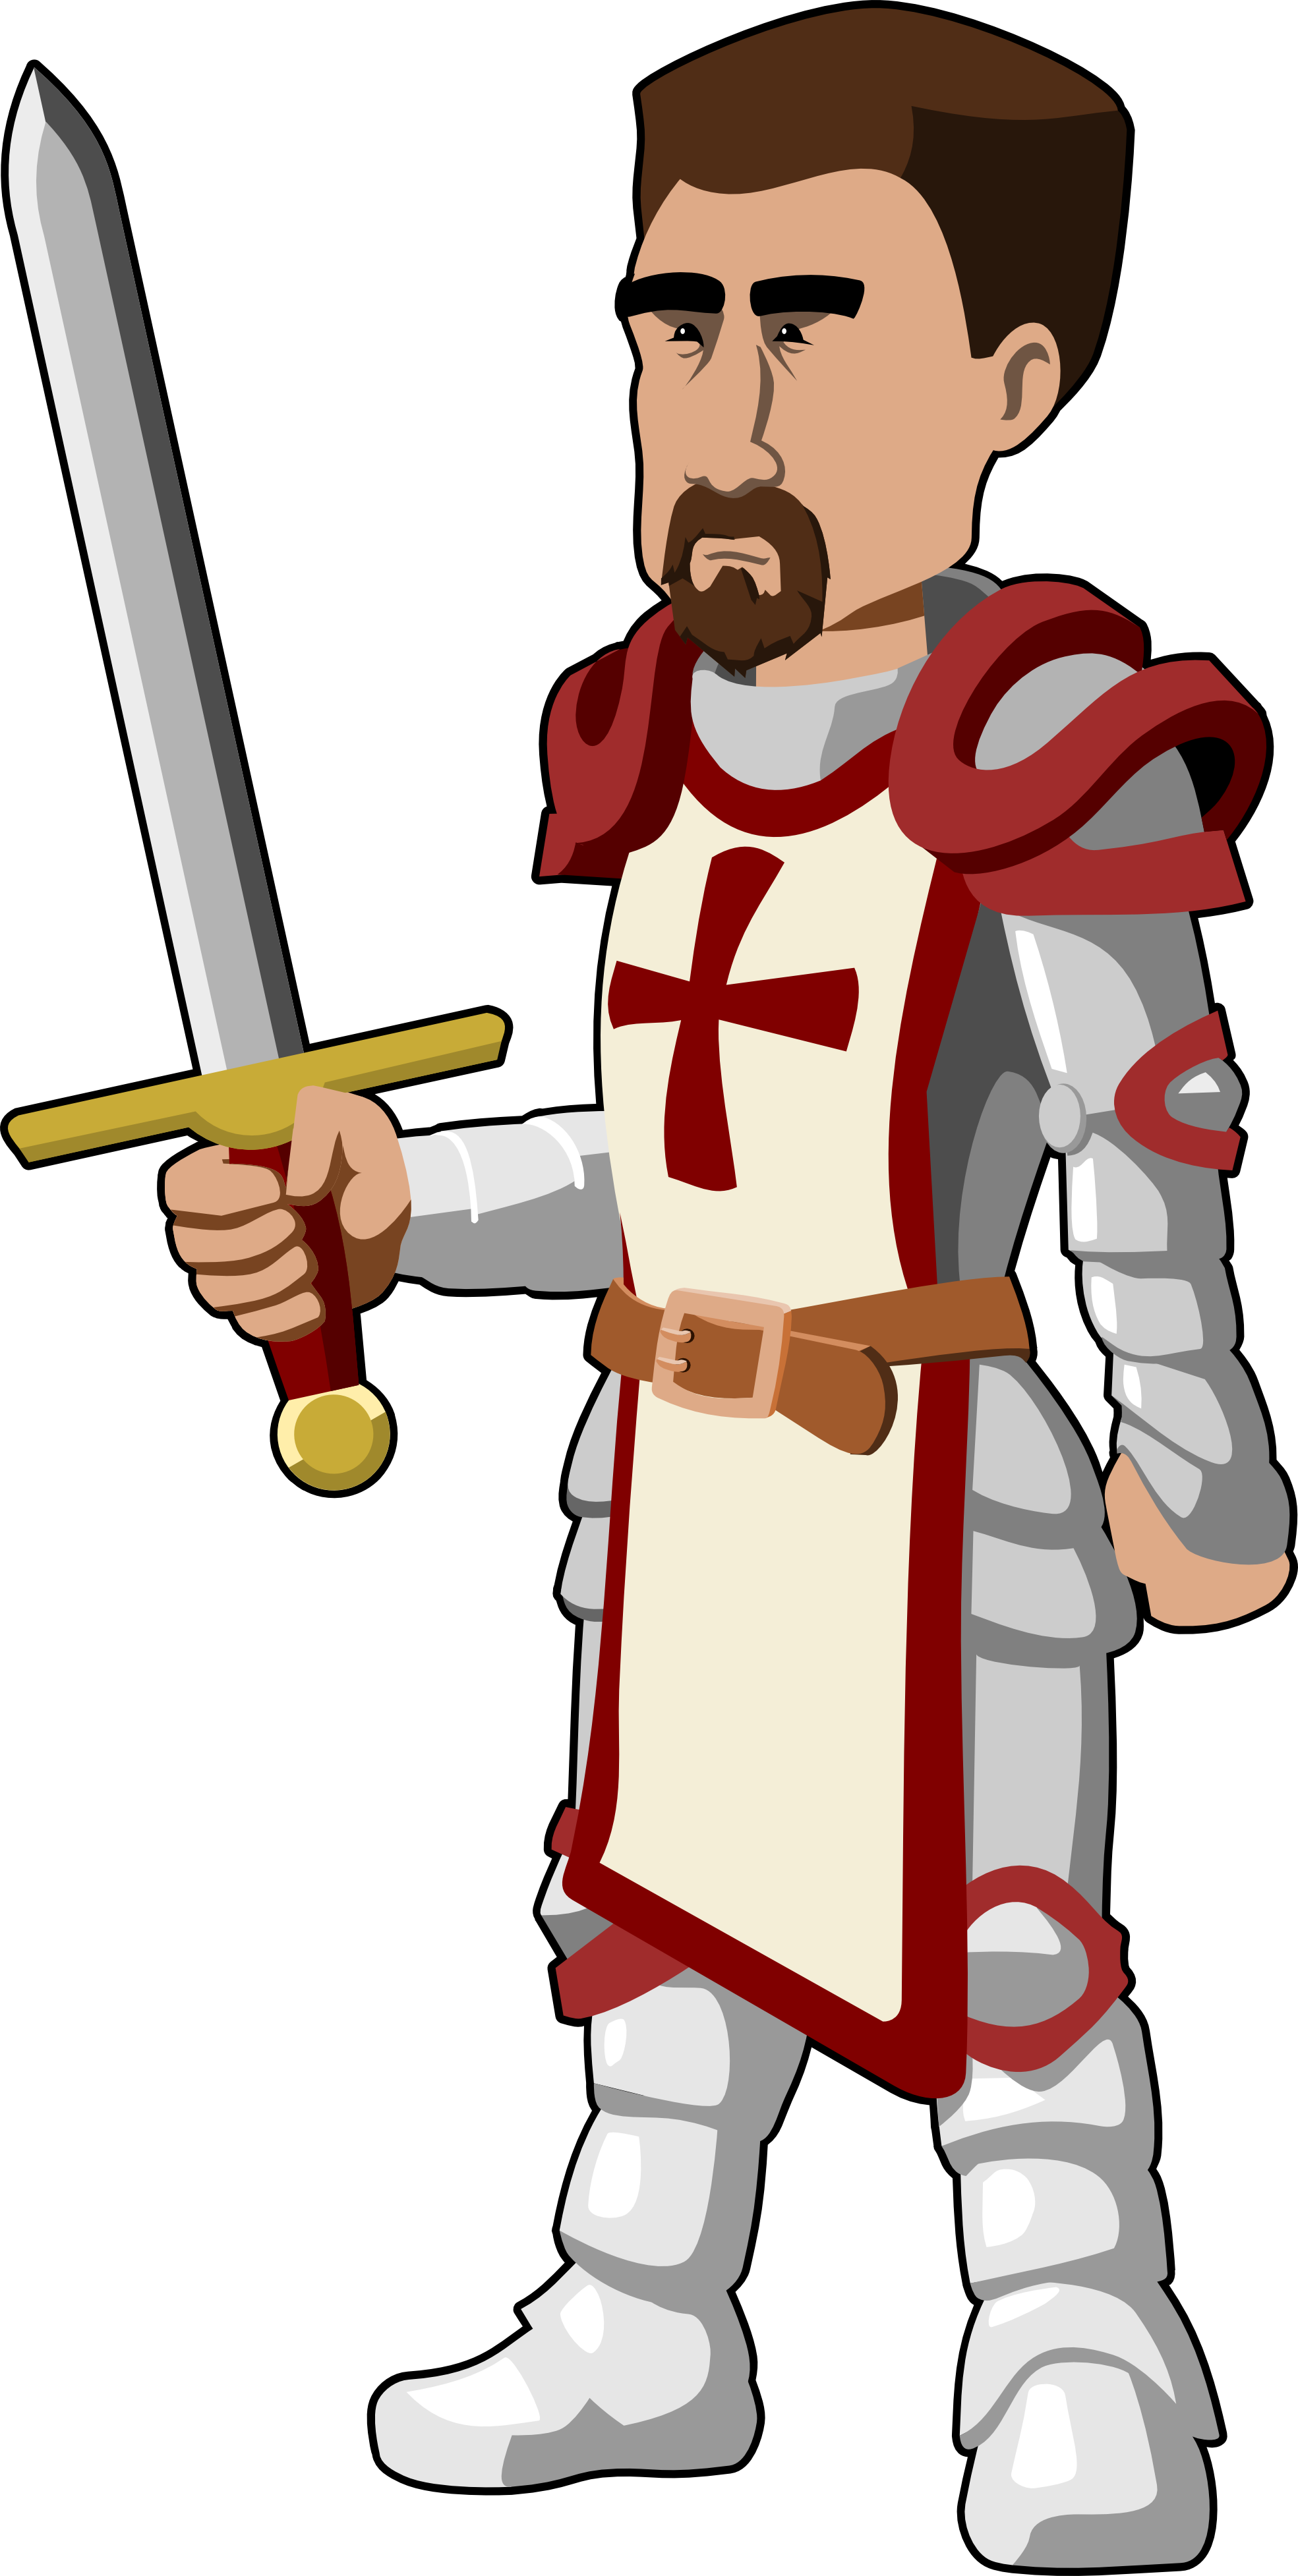 Free knight clipart the cliparts.